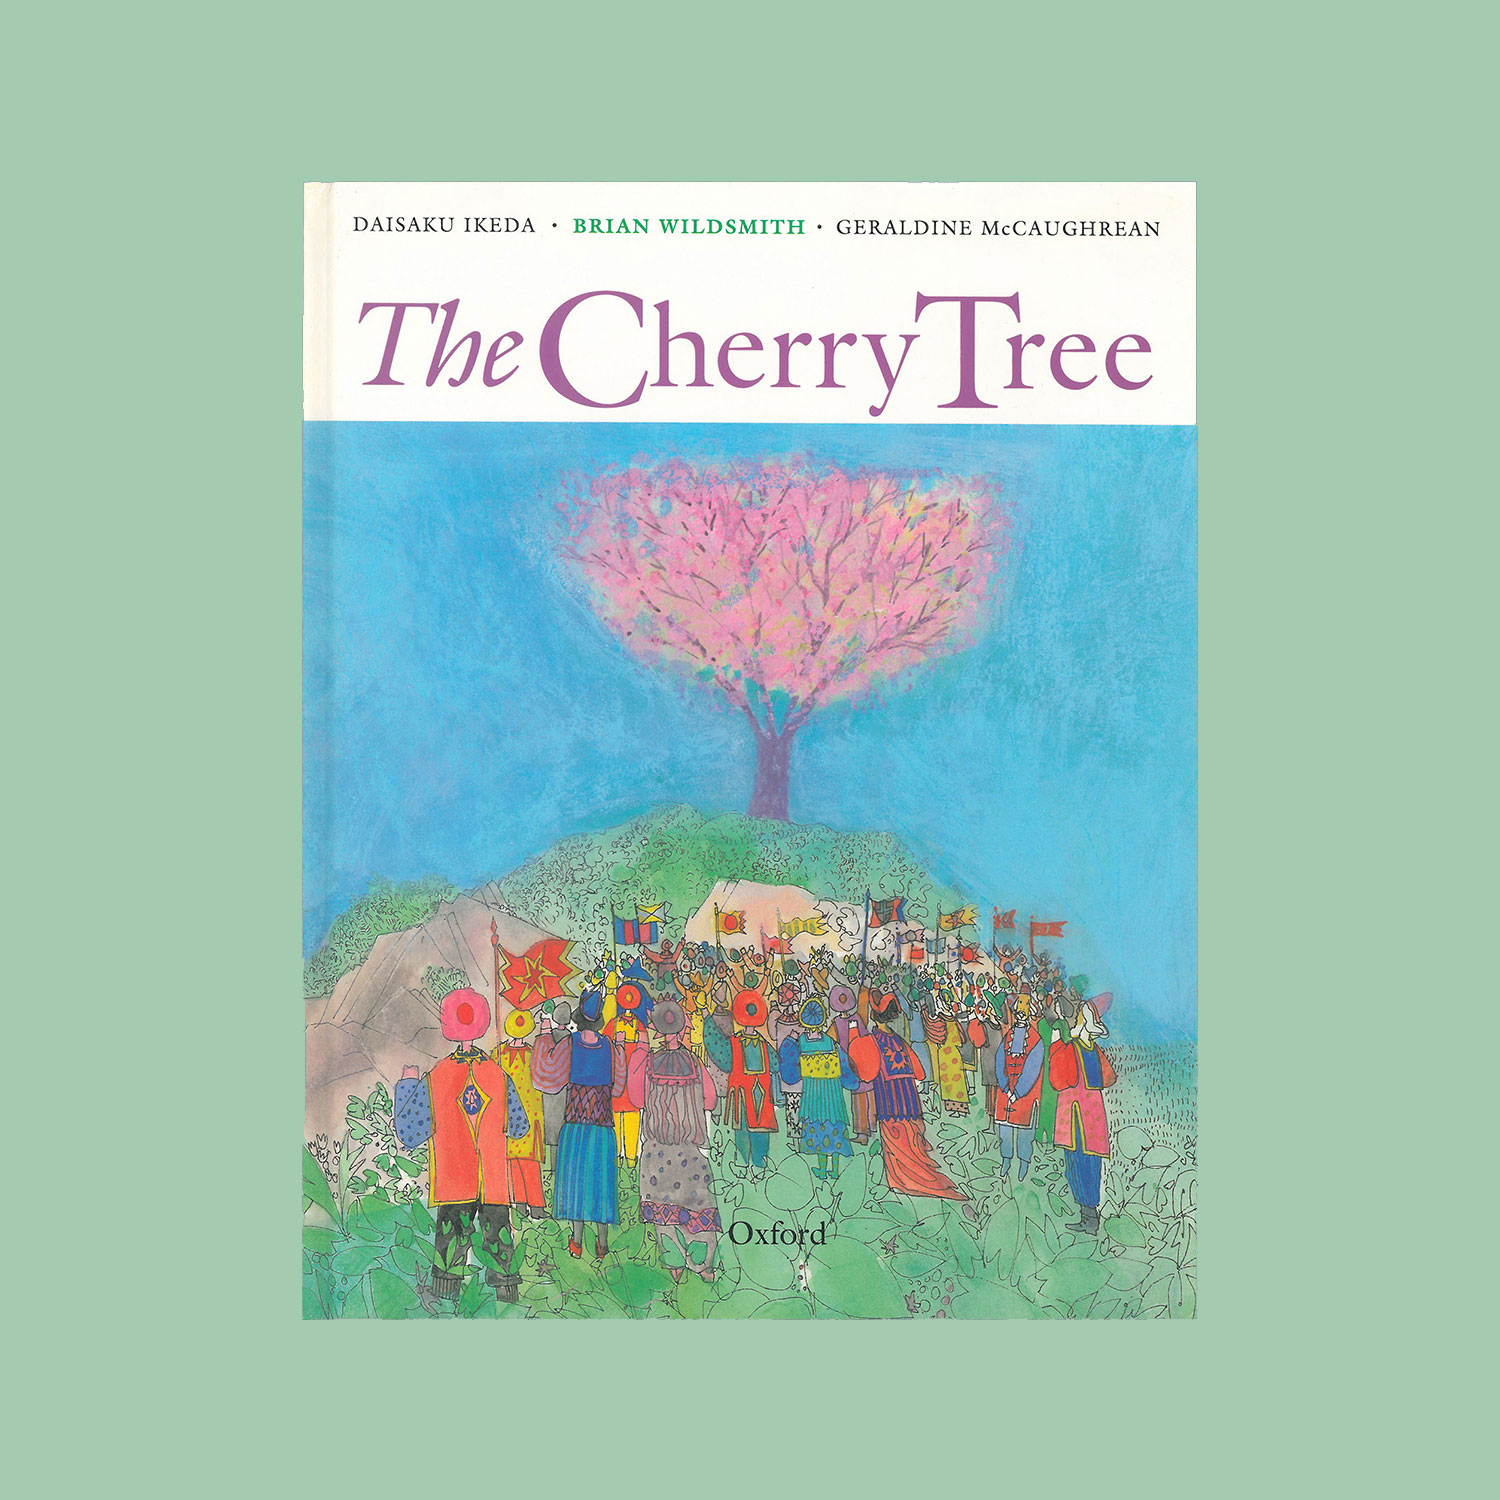 """THE CHERRY TREE - Written by Daisaku Ikeda, translated into English by Geraldine McCaughrean, illustrated by Brian Wildsmith. 1991""""Mourning their father, who died in a war that also left their home in ruins, Taichi and his sister Yumiko decide to help an old man who is wrapping a damaged cherry tree in straw mats as protection against the cold, in the hope that the tree will bloom… The story is minimal, but the images compelling… His colours are lush but tender, his stylised creatures beautifully integrated into the designs… his snow both decorative yet evocative, while the tree in full bloom radiates pure joy.""""Kirkus Reviews"""